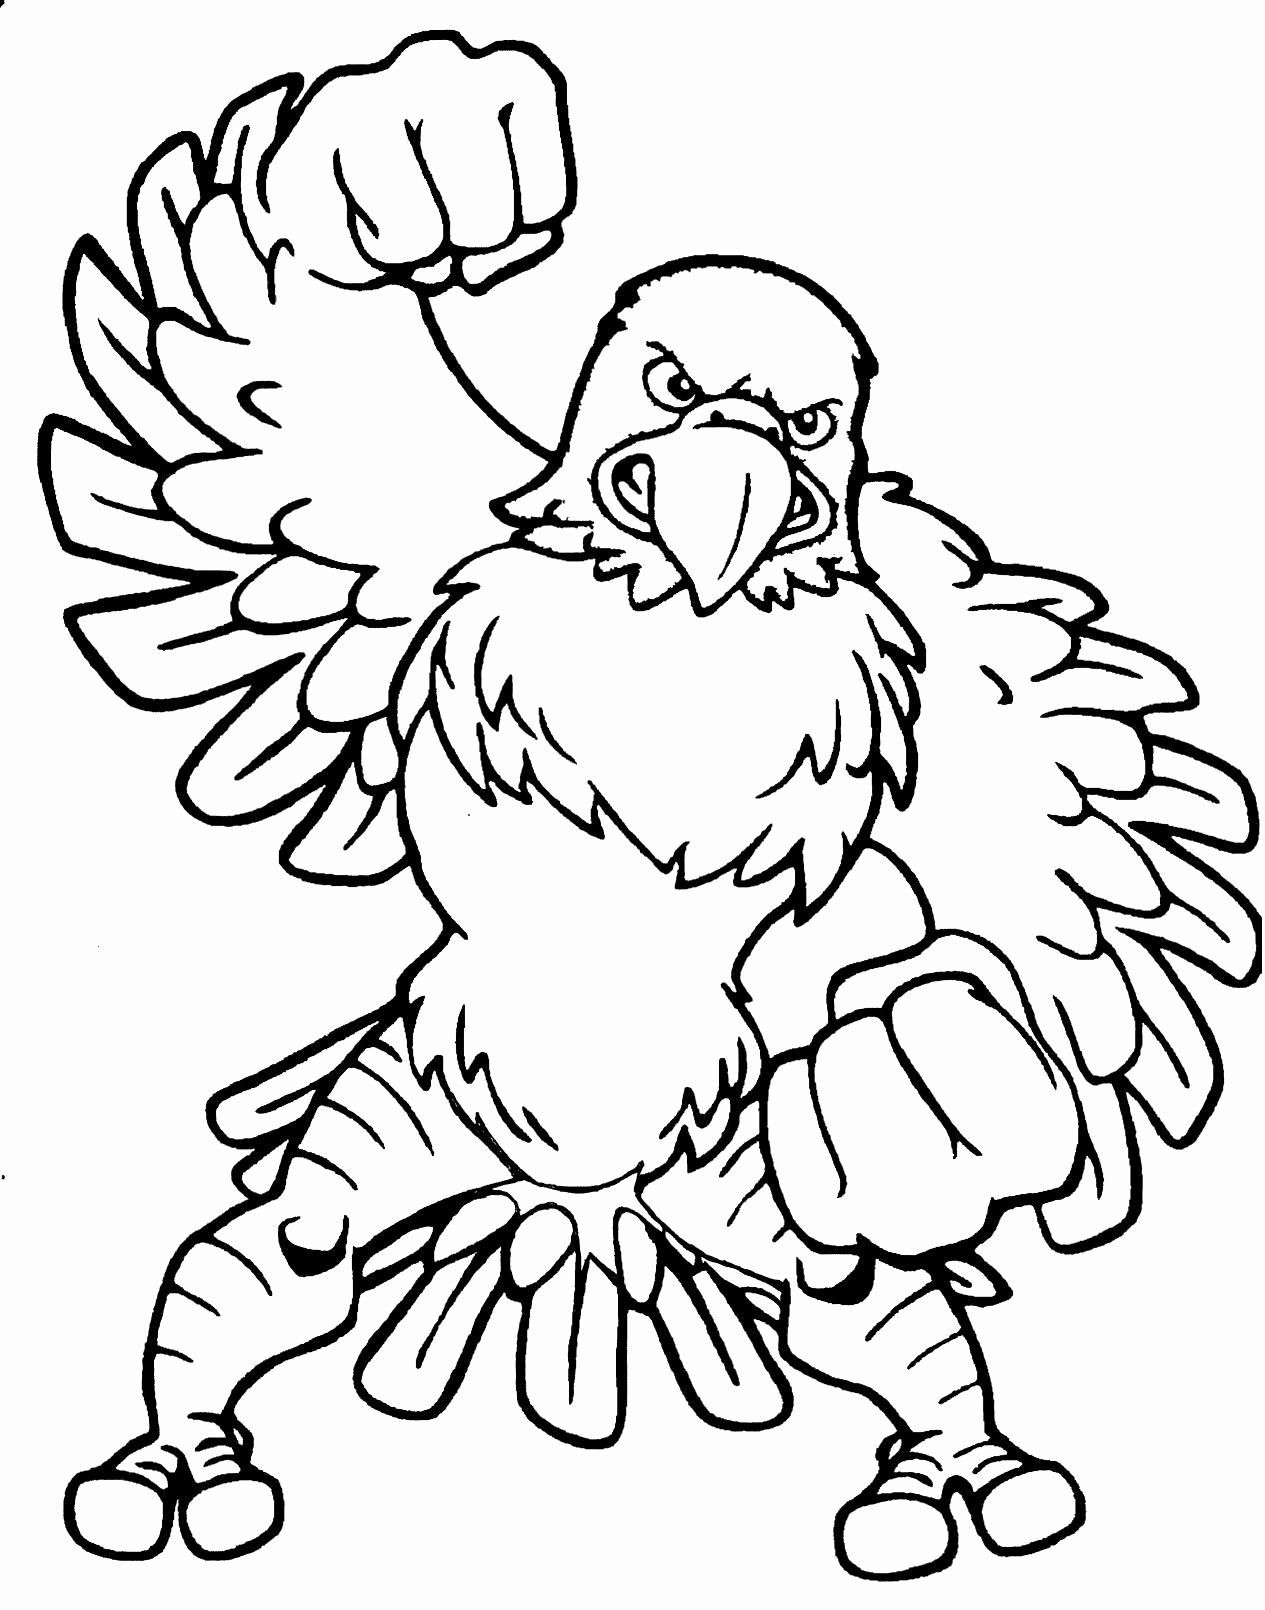 Mexican Flag Eagle Coloring Page Lovely Herky Iowahawkeyes In 2020 Coloring Pages Animal Coloring Pages Flag Coloring Pages